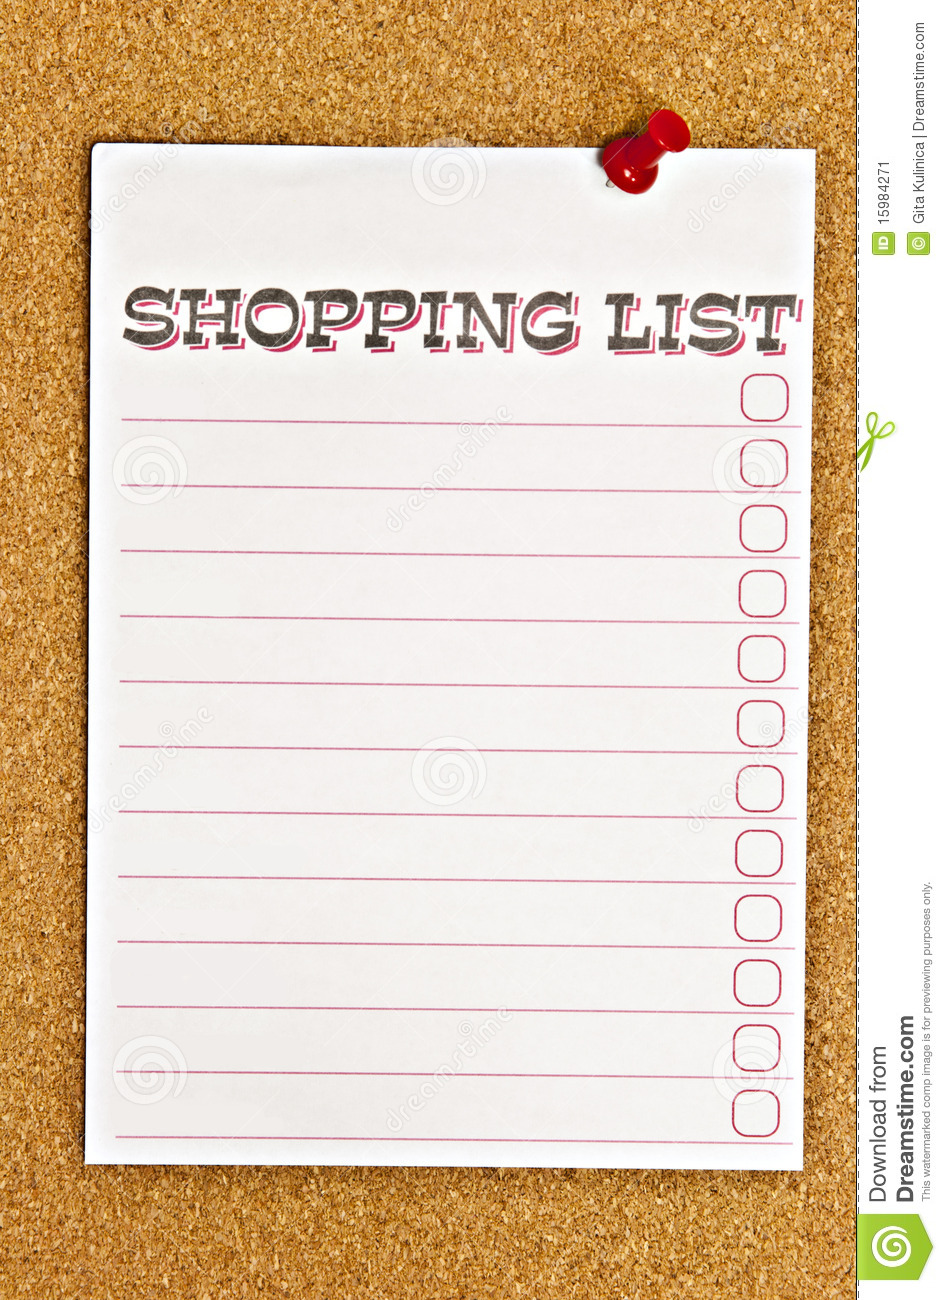 Shopping list and red thumbtack on cork bulletin board background.